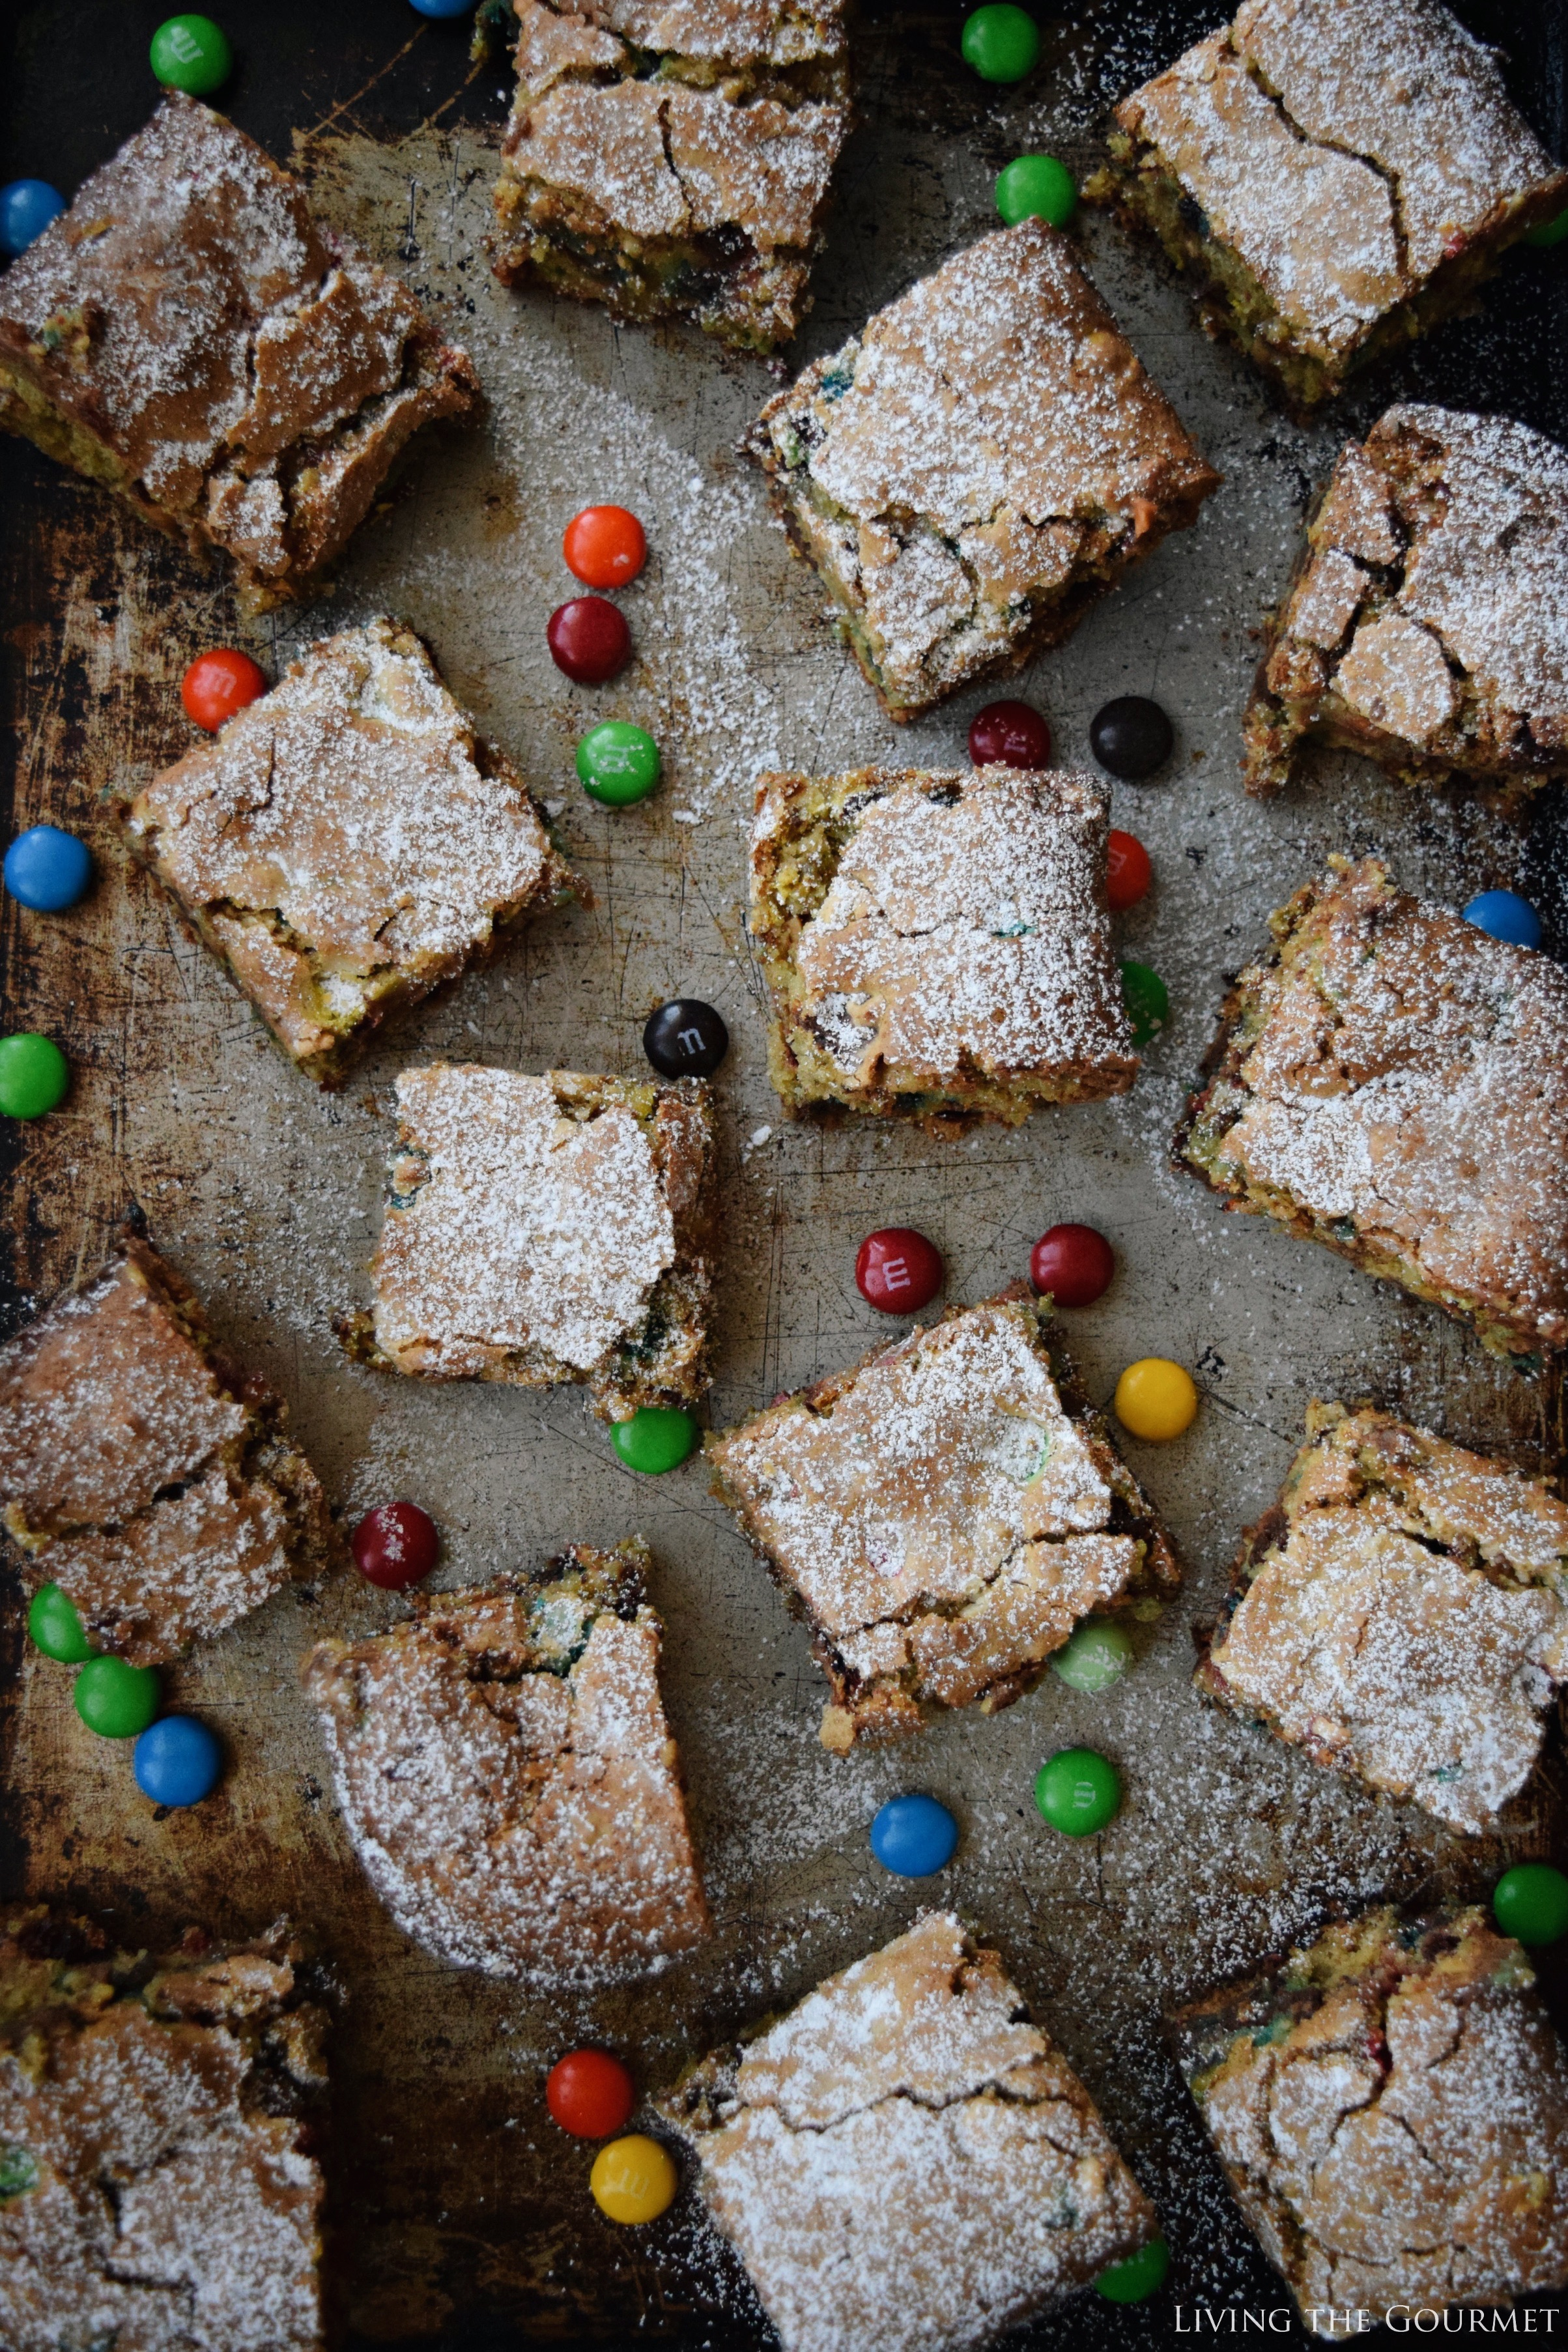 Living the Gourmet: Fudge Blondie Bars aka Fabulous Blondies